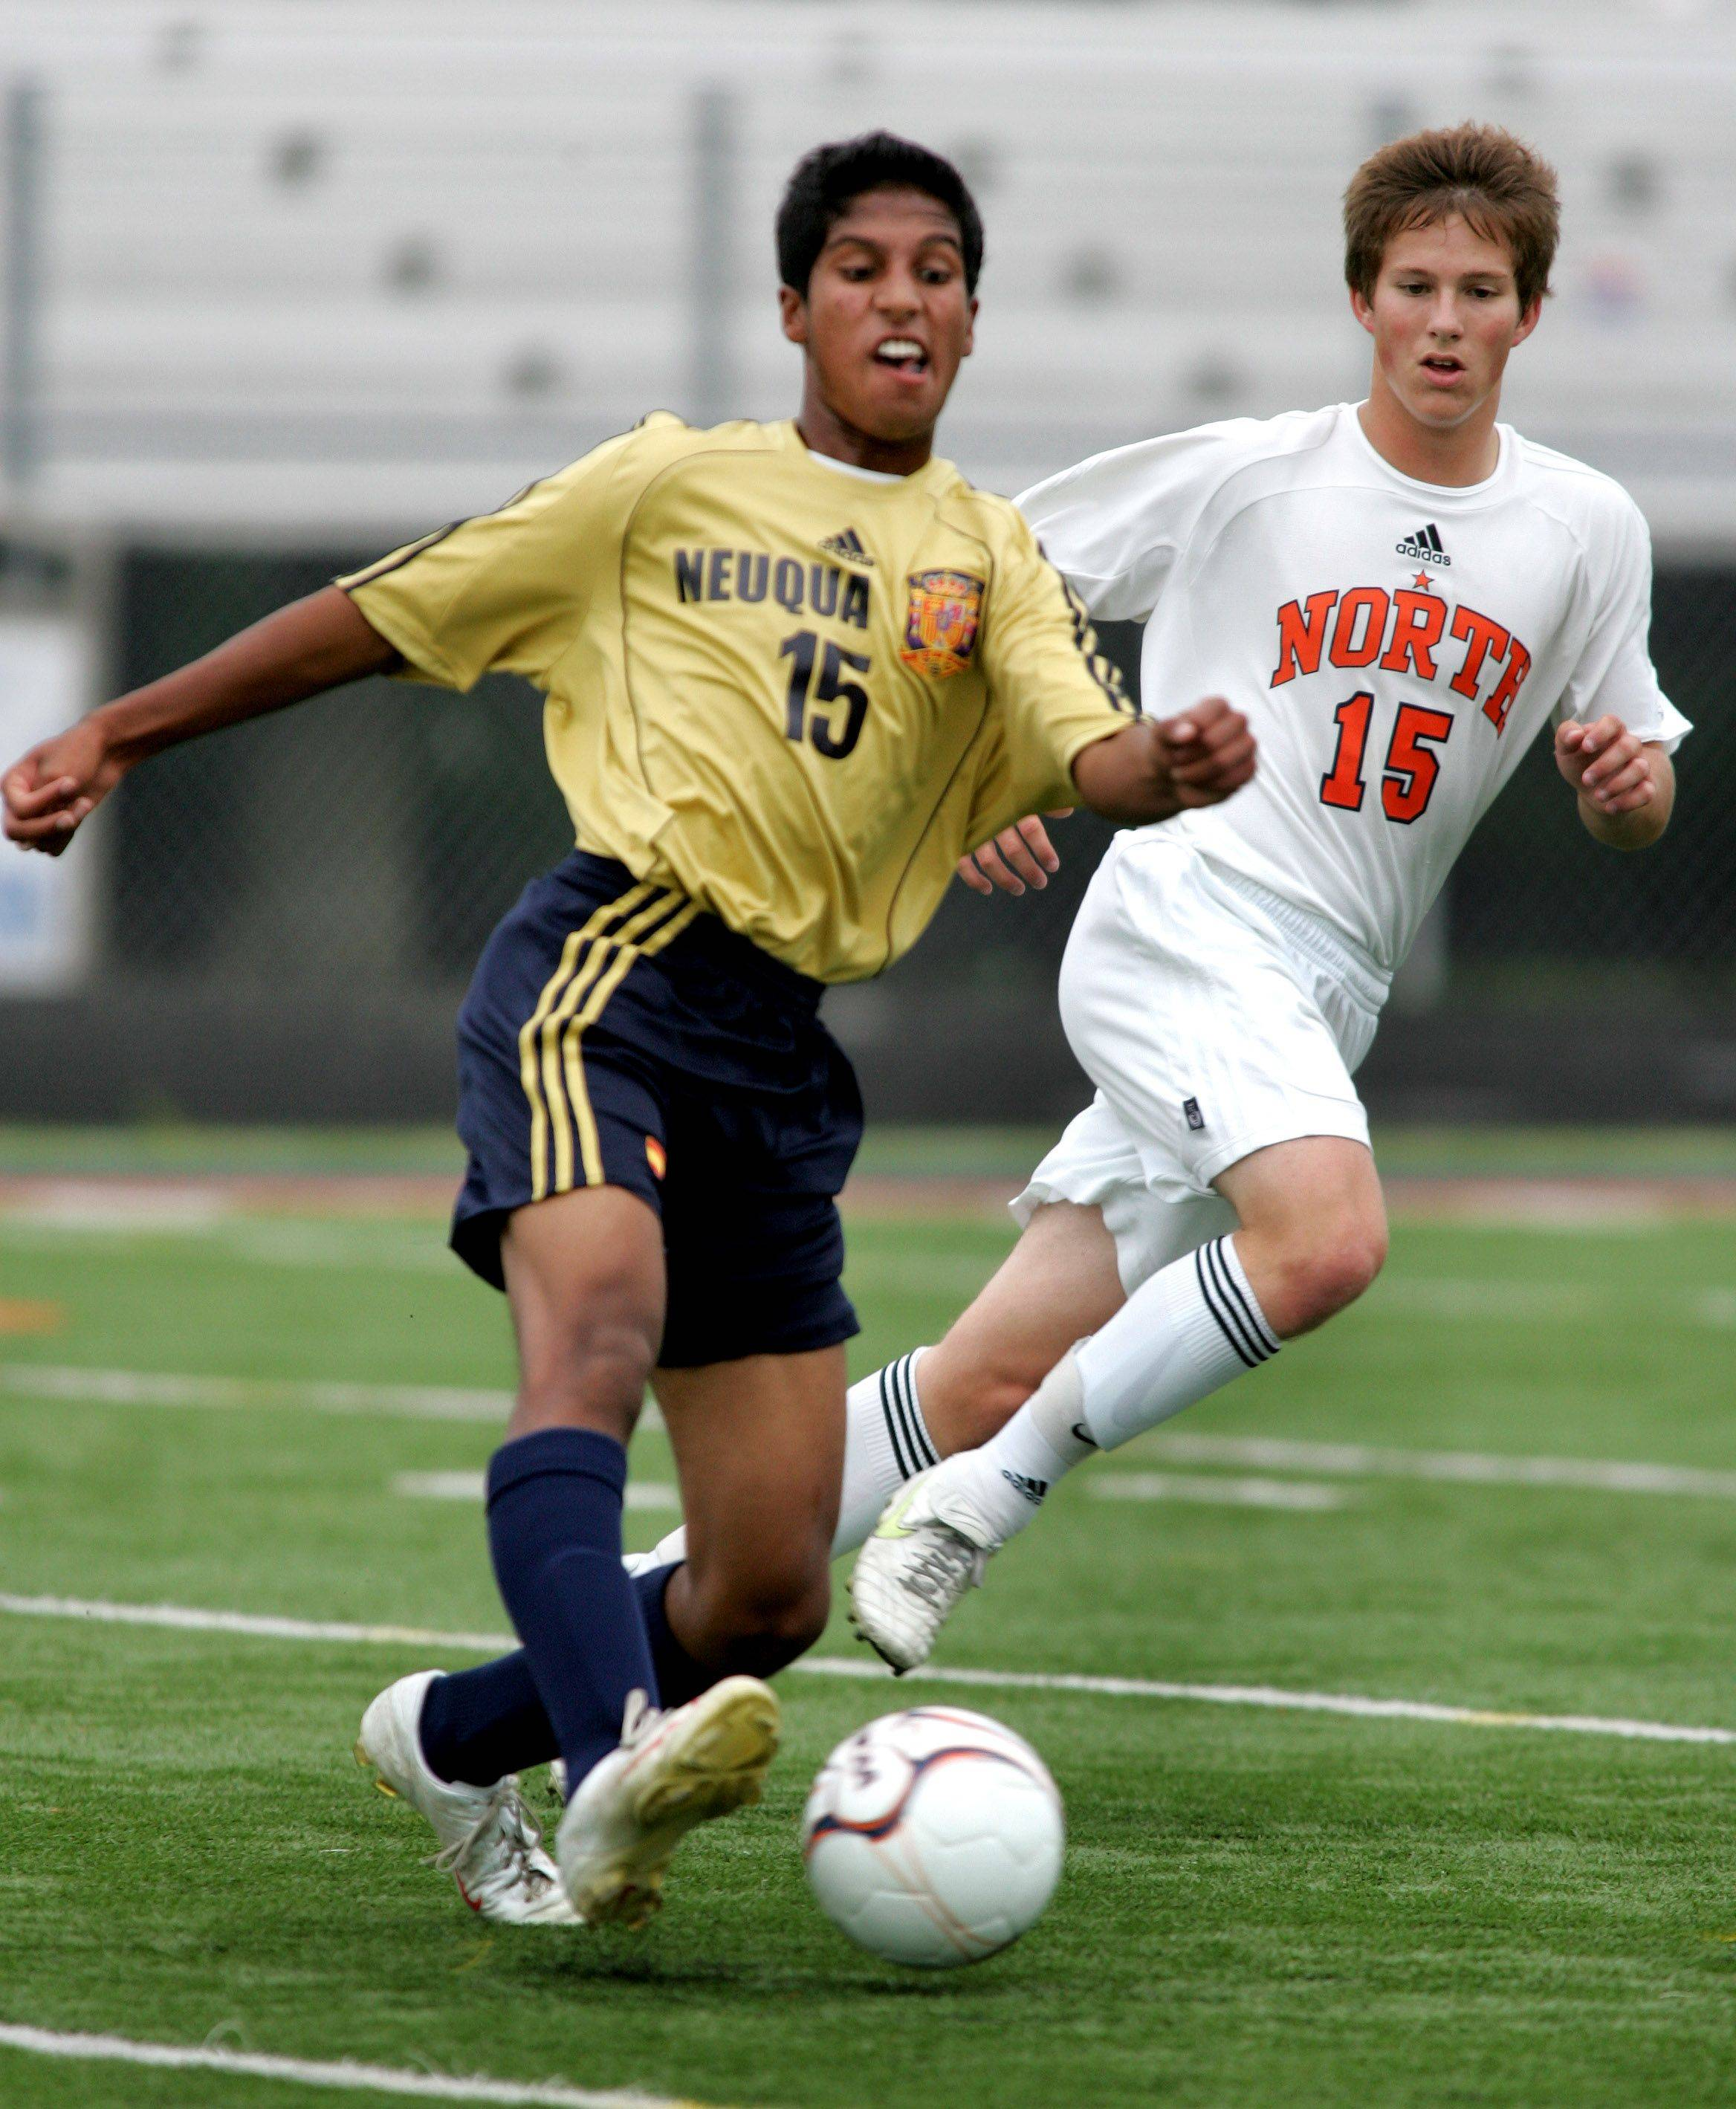 Bev Horne/bhorne@dailyherald.com Paarth Joshl of Neuqua Valley, left, takes control of the ball from Zach Peterson of Naperville North in boys soccer action Tuesday in Naperville.